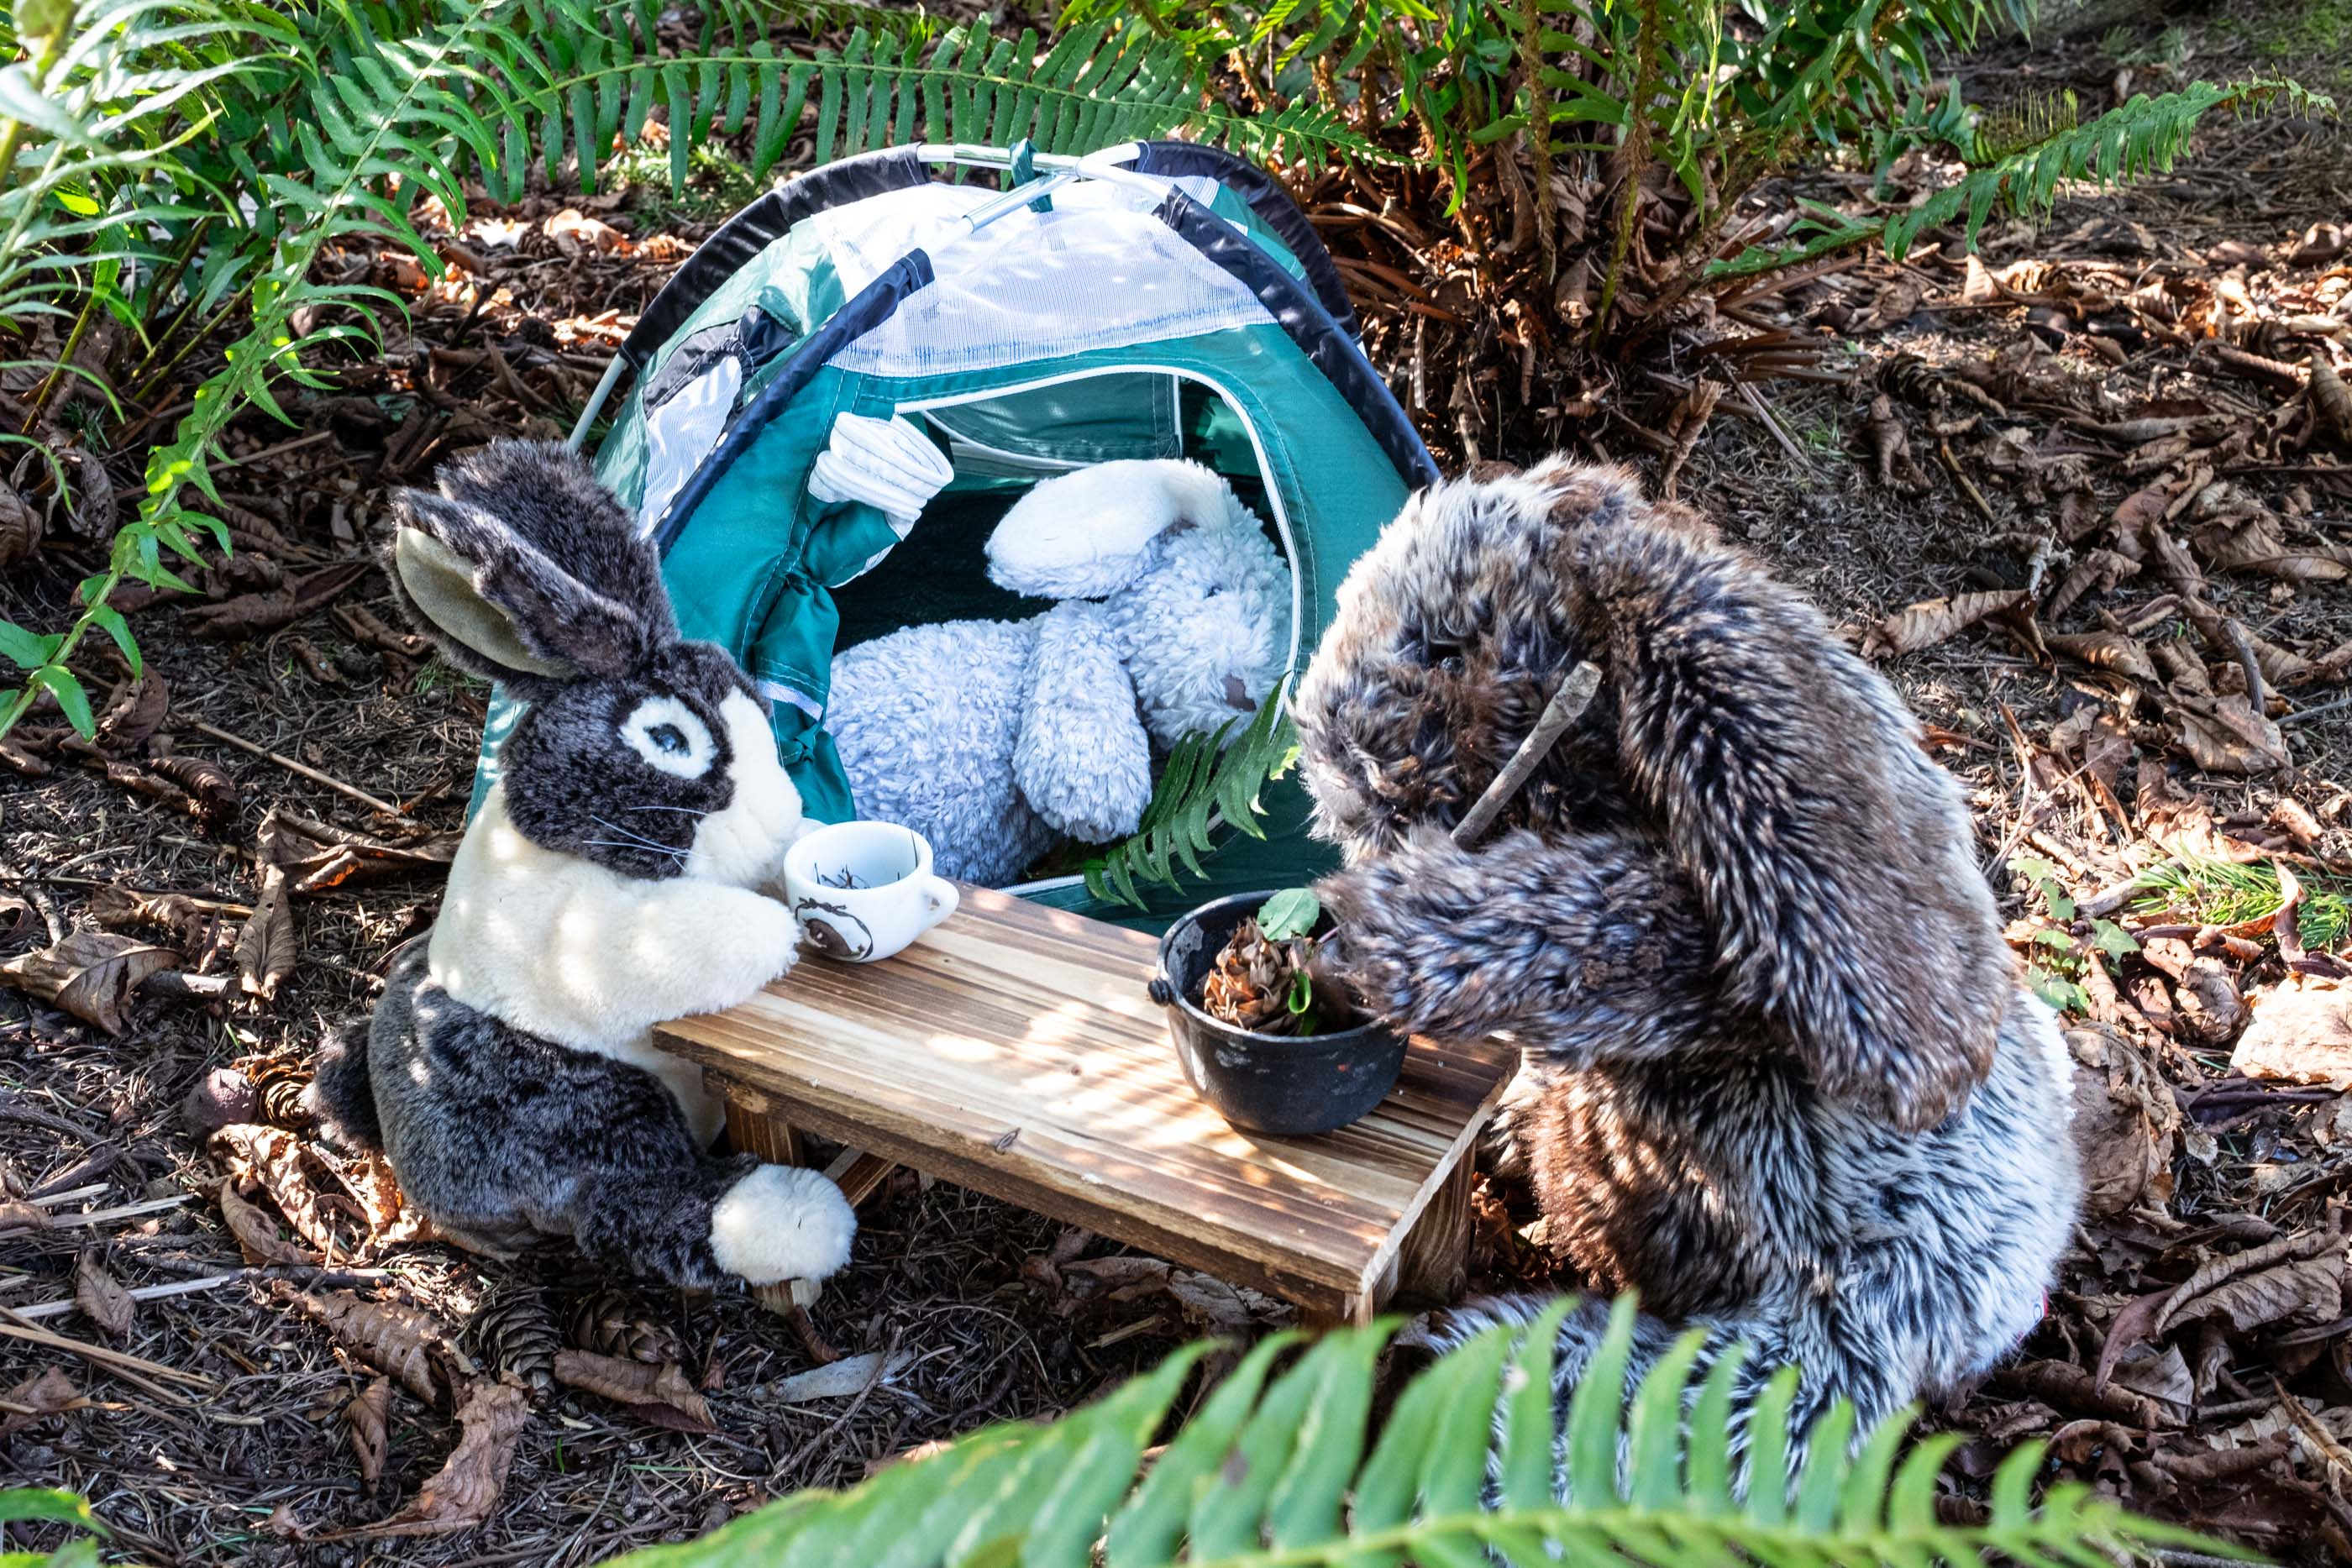 plush bunnies camping with a tent